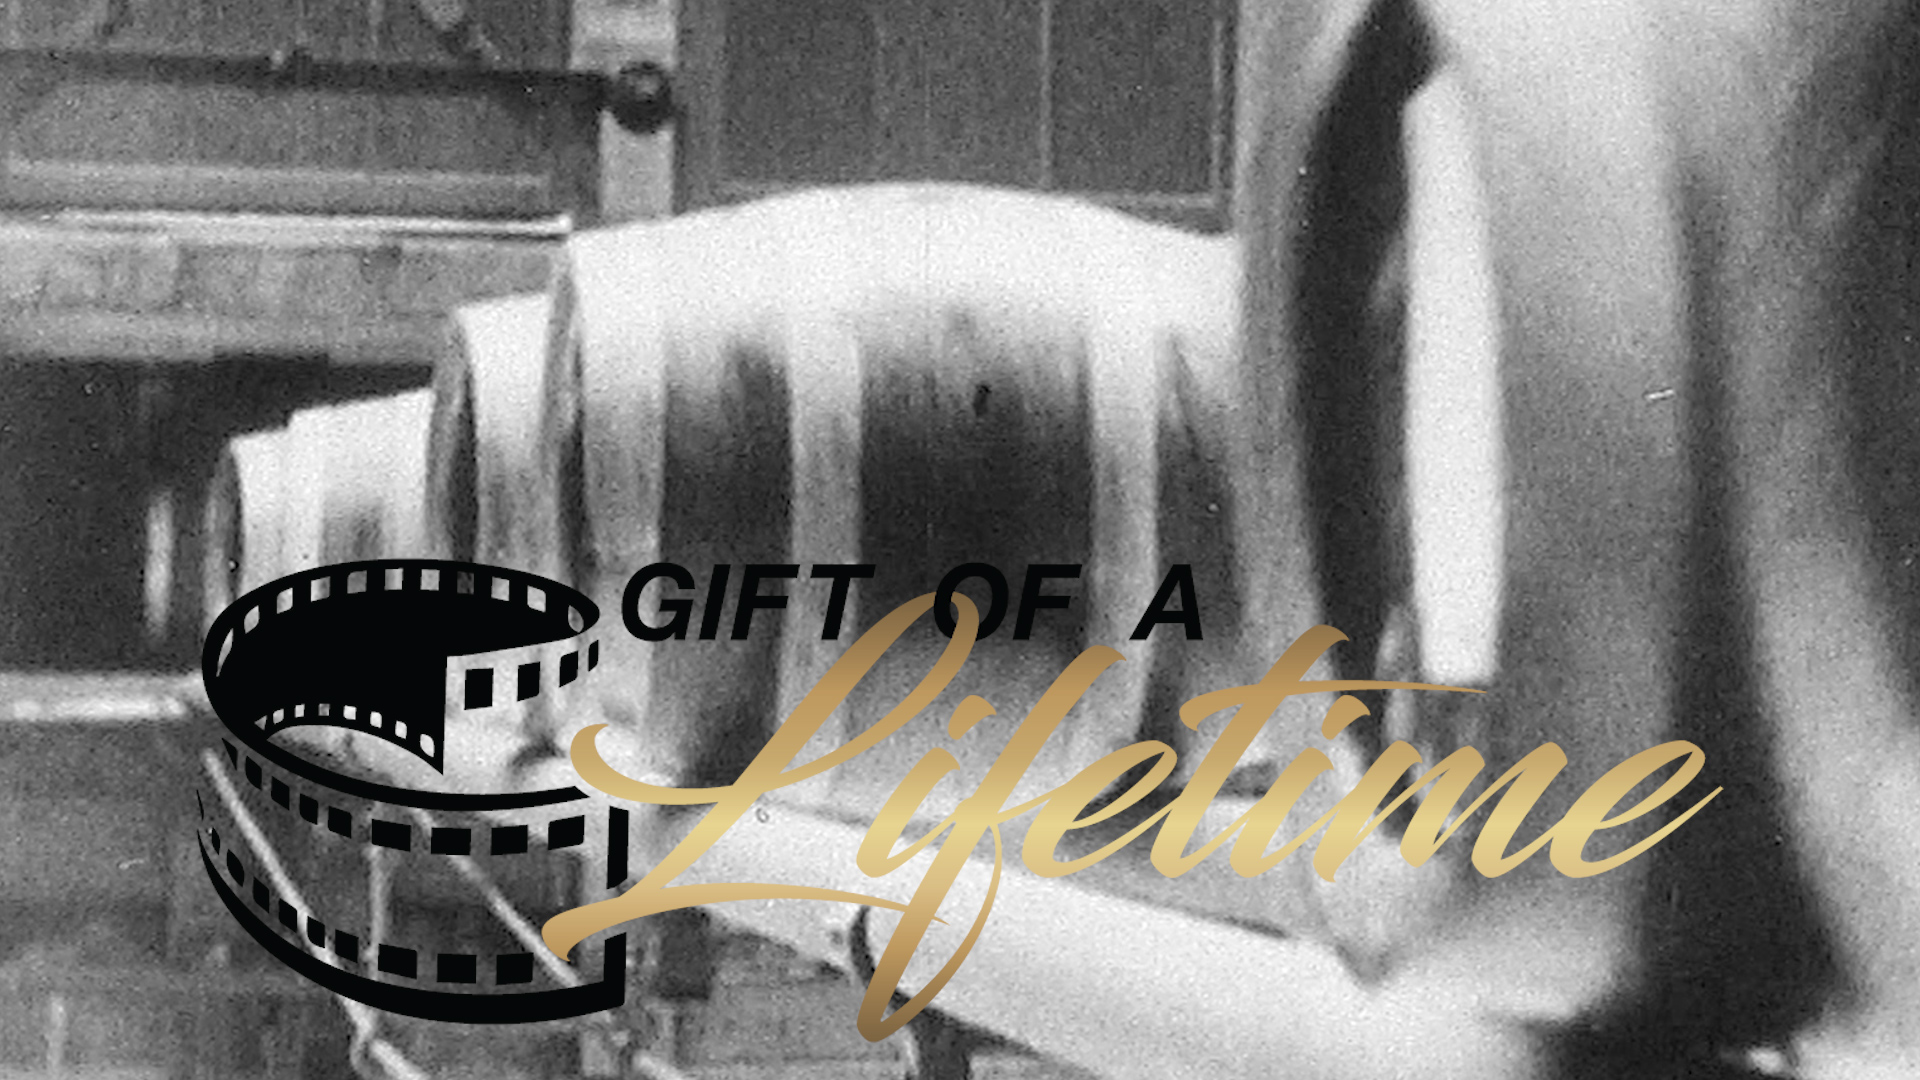 GIFT OF A LIFETIME SHORTS - JOHN & MAUREEN MURRAY - OPEN